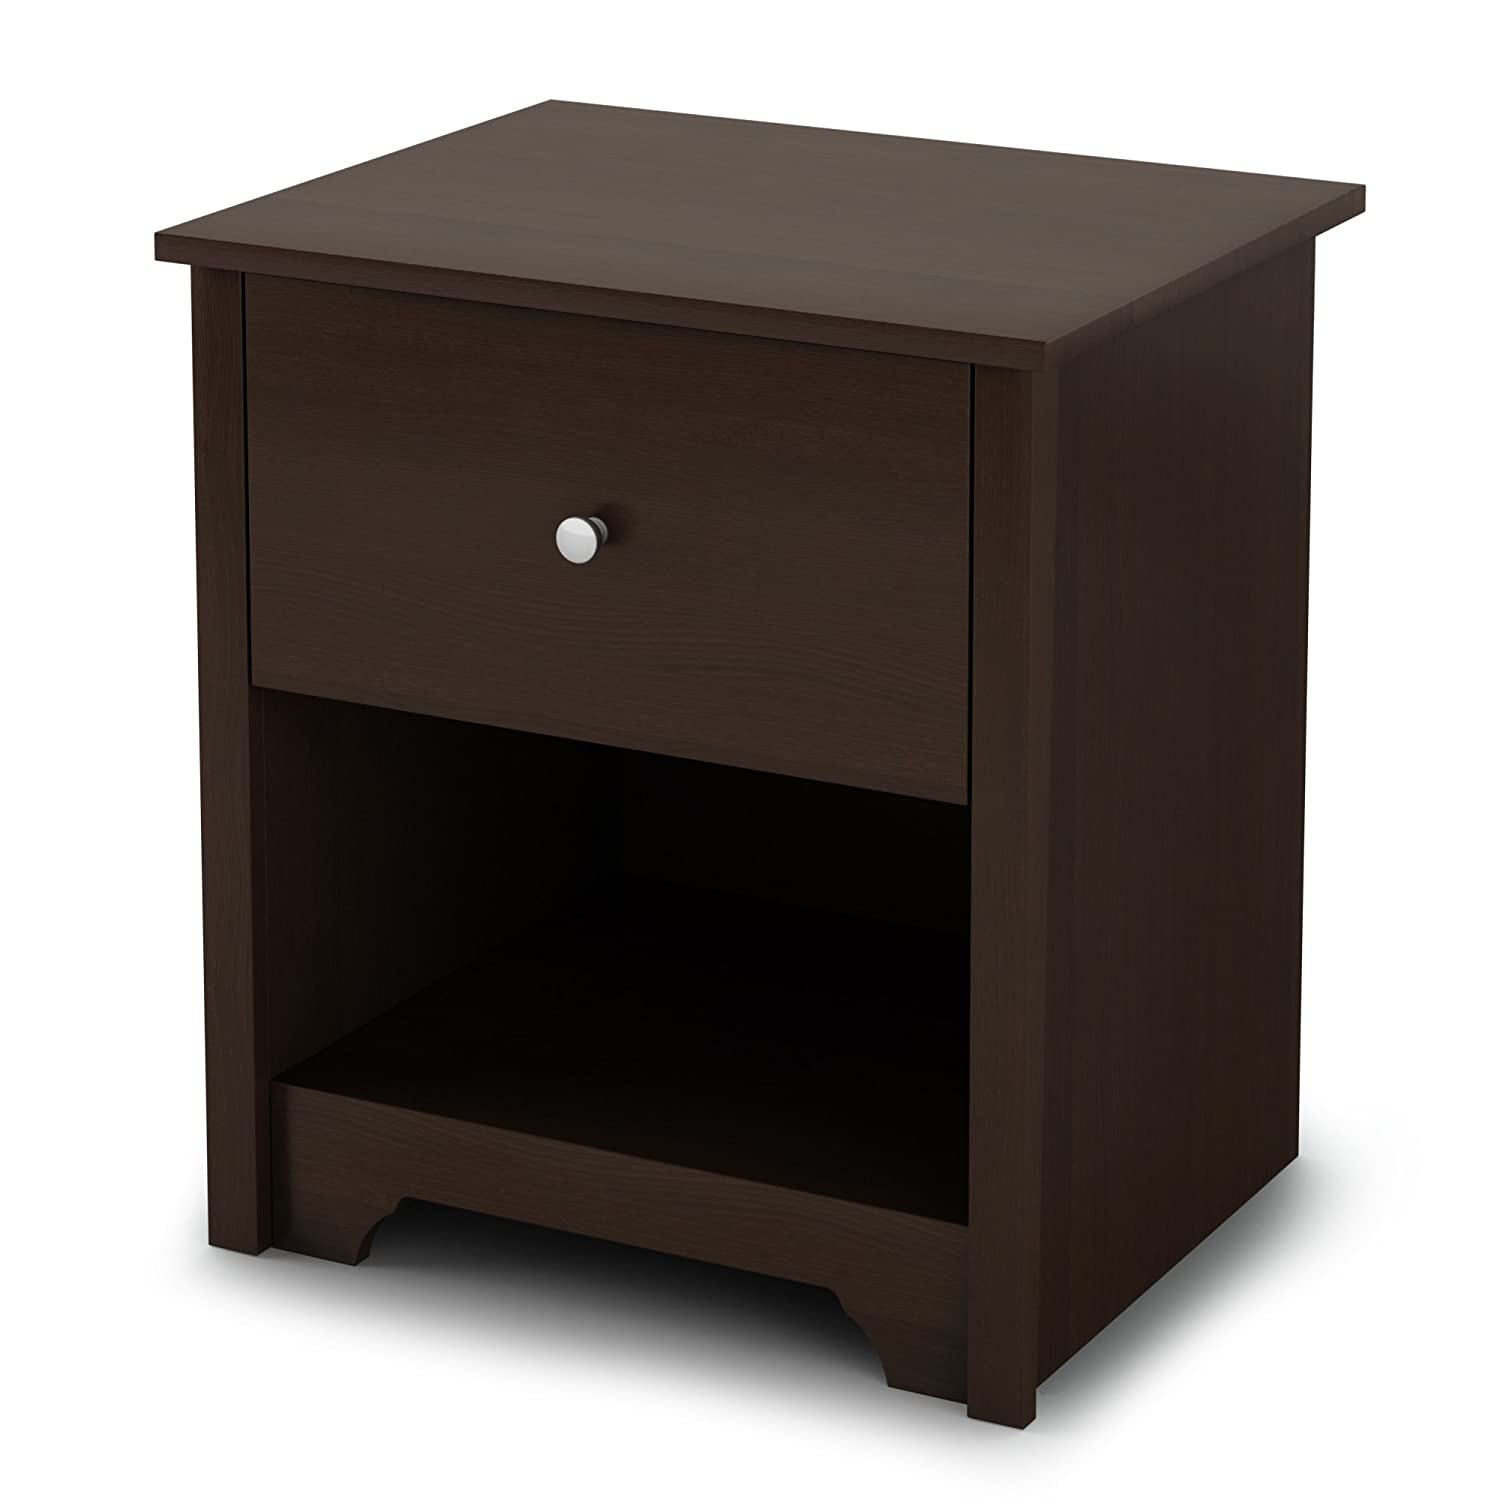 South Shore Vito 1-Drawer Nightstand-Chocolate